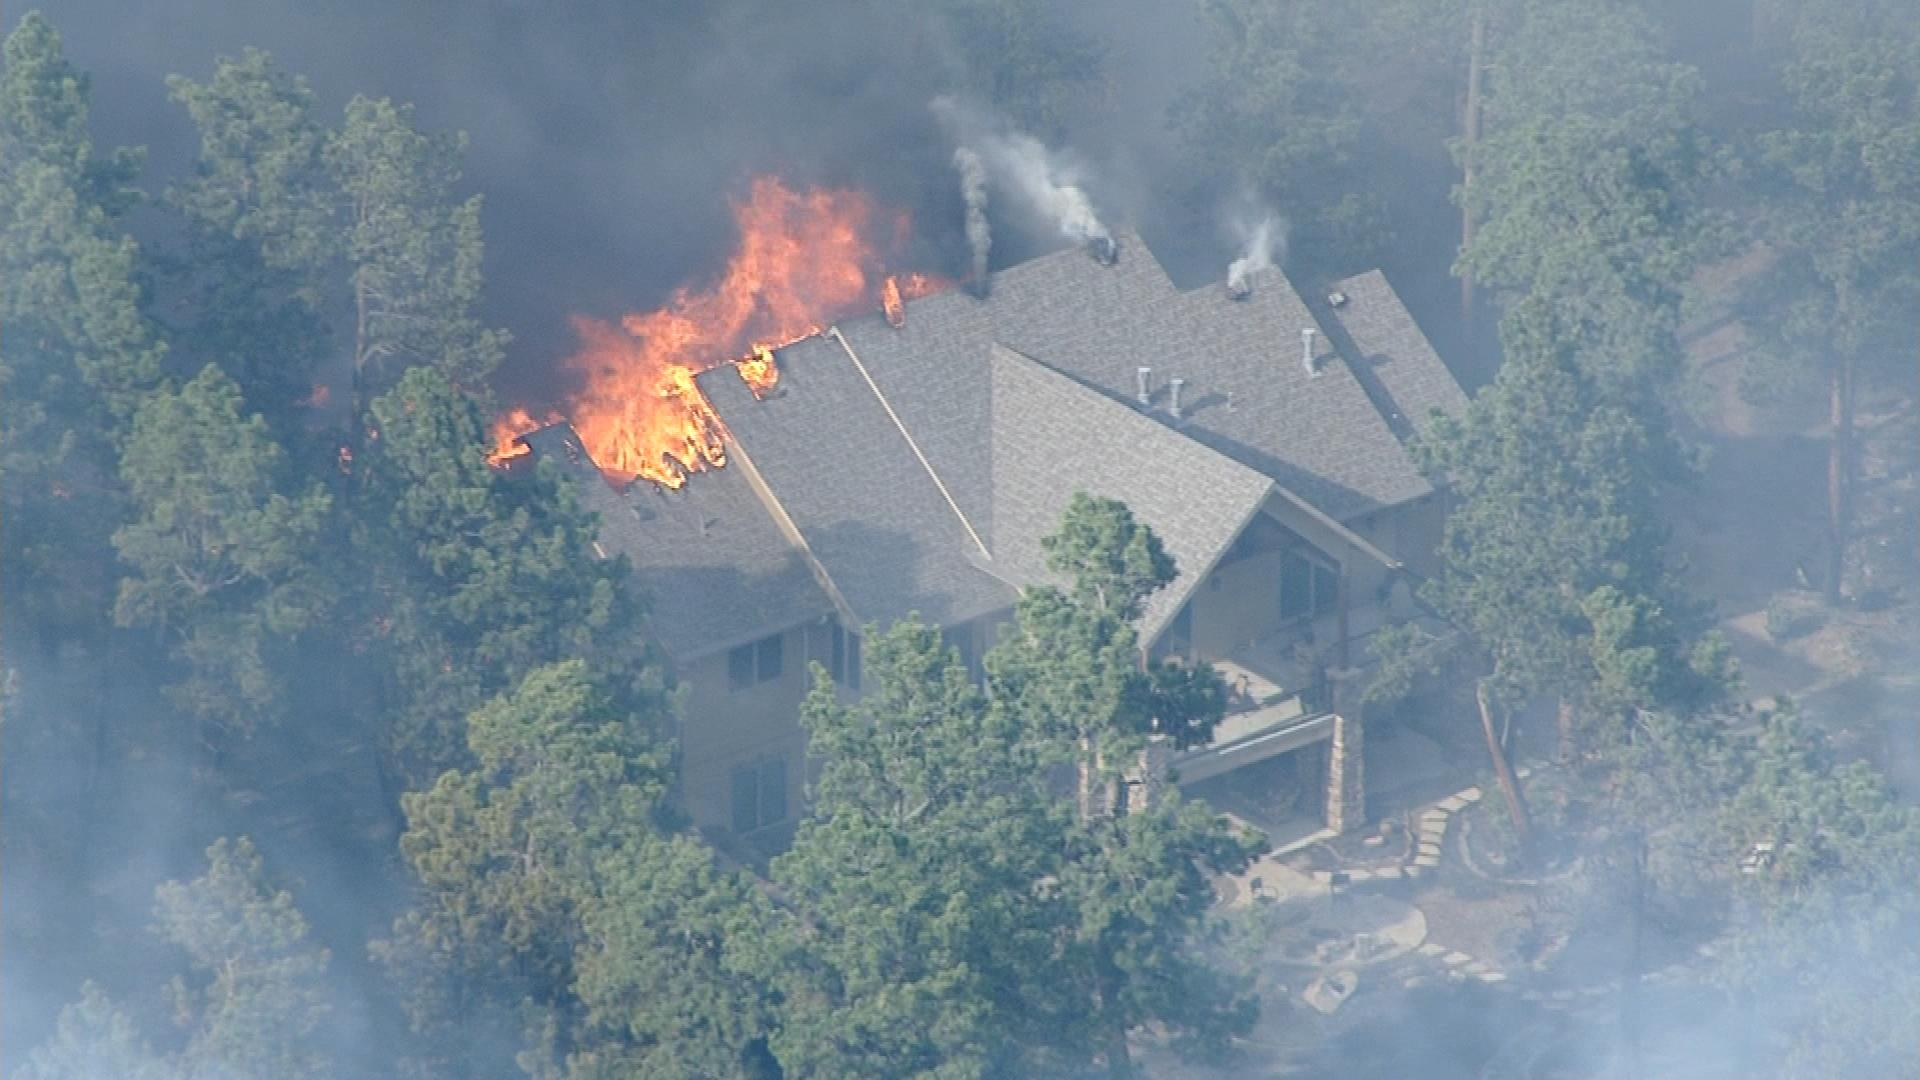 A house burning last summer (credit: CBS)